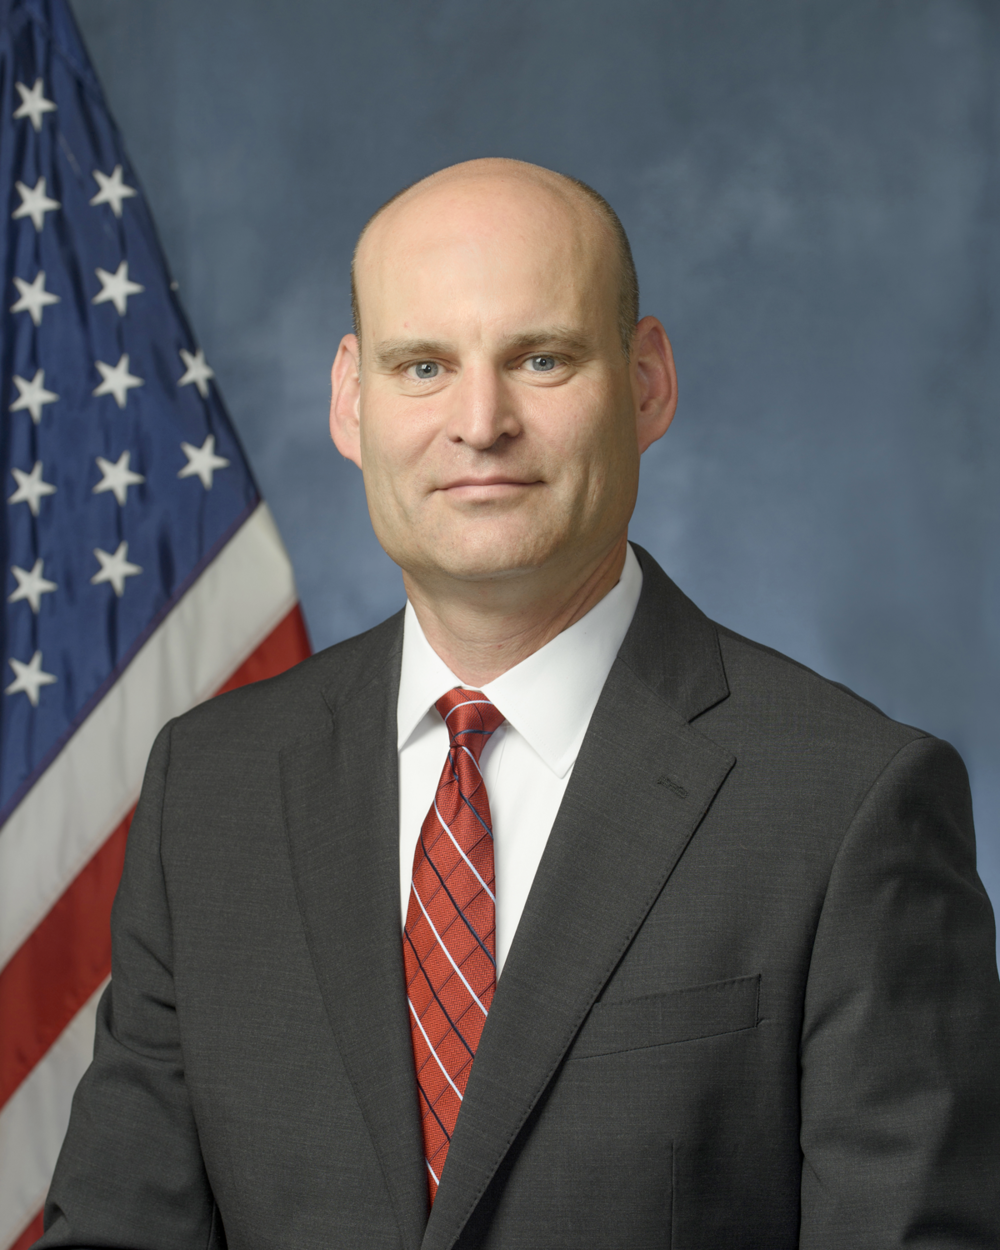 Paul Dvorak, Secret Service